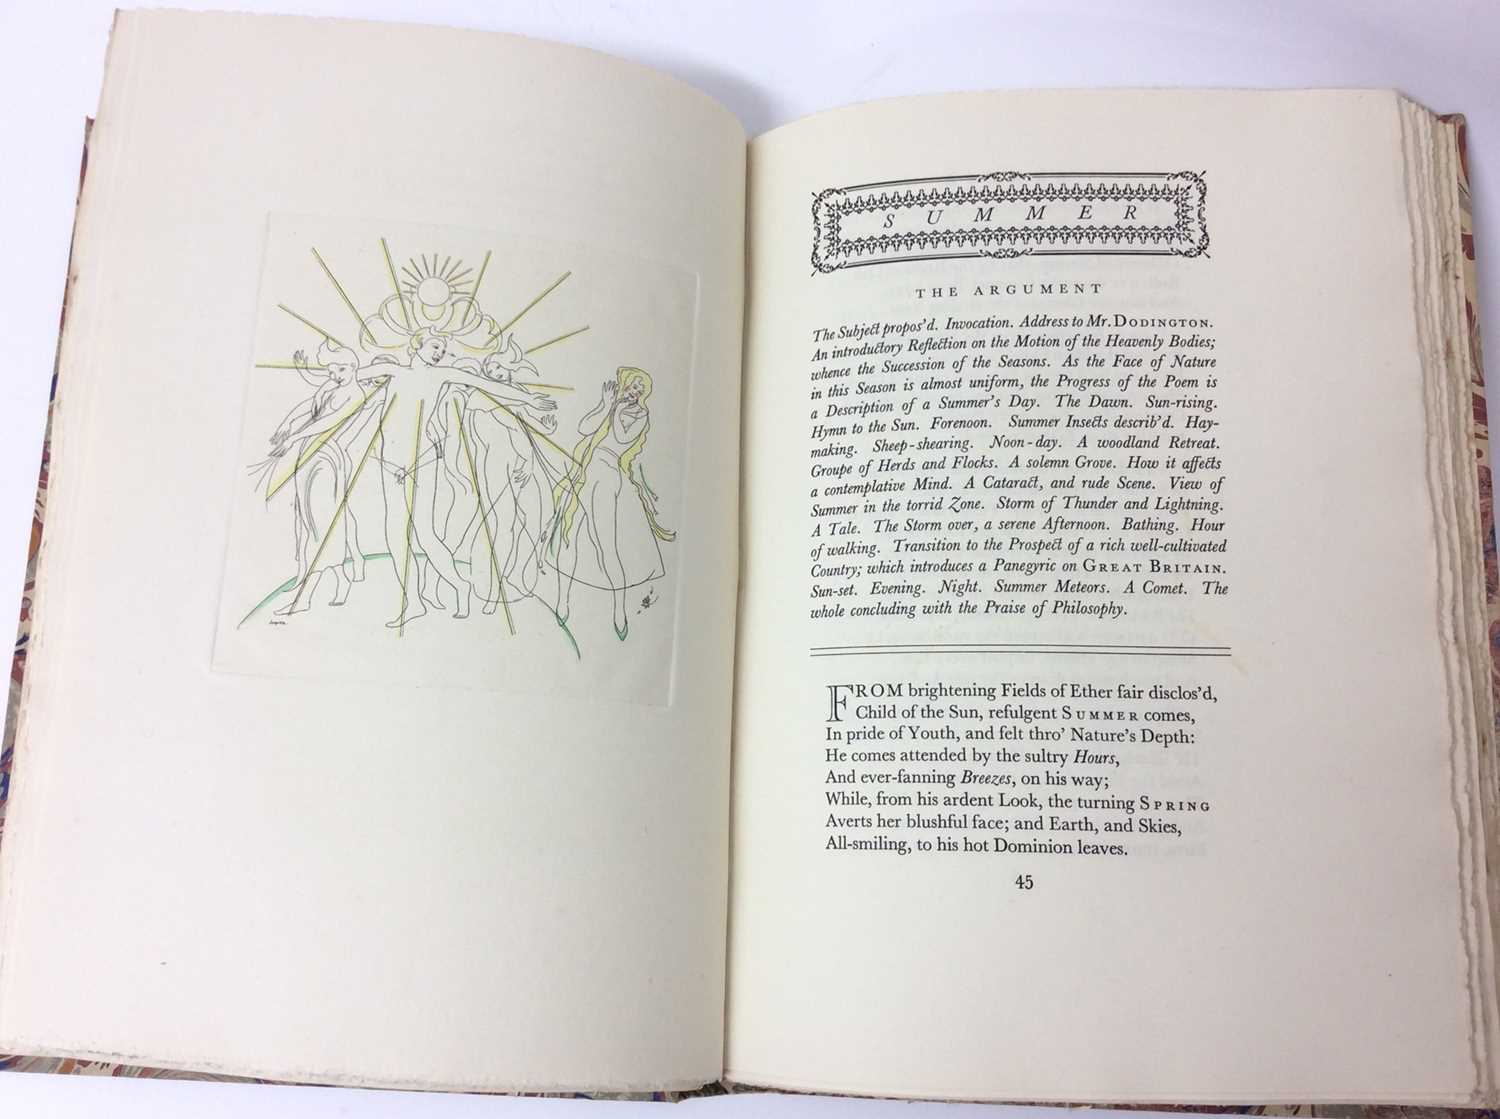 The Seasons by James Thomson, Nonesuch Press 1927, numbered 186 out of 1,500 copies, 1927 - Image 6 of 10